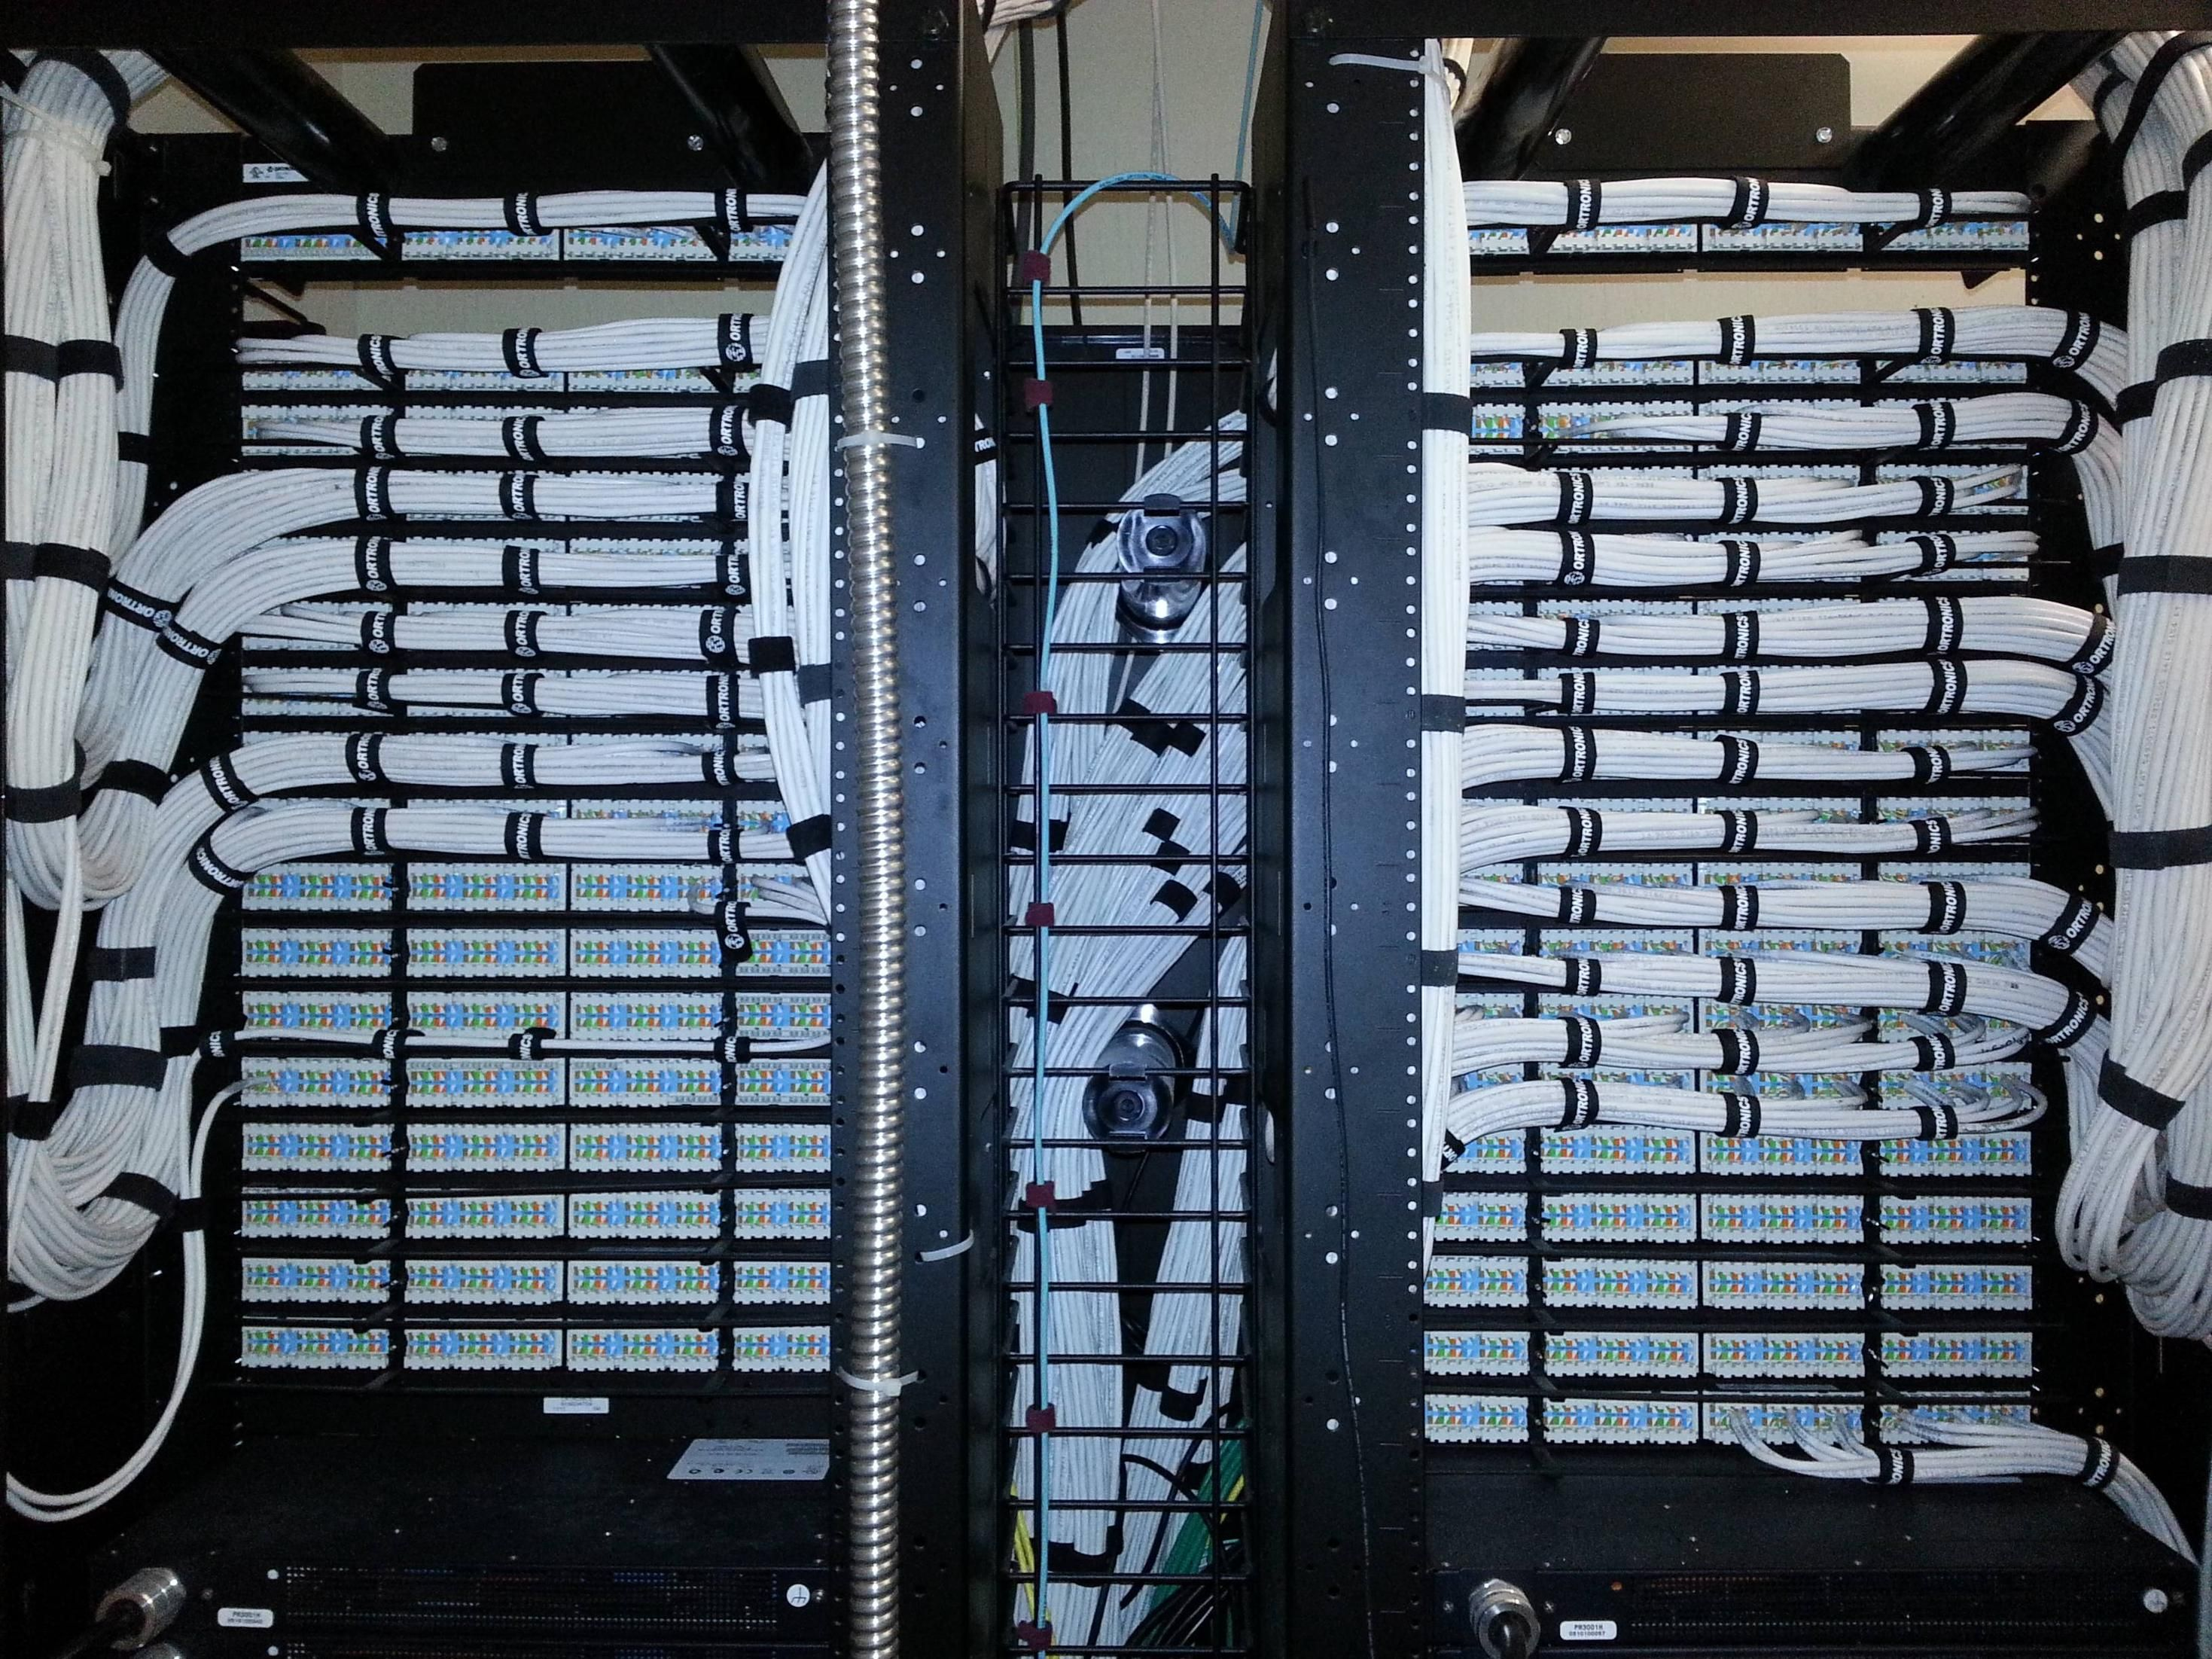 Credit Goes To Some Unknown Artist But I Felt The Need Share His Patch Panel Wiring Im Jealous Just Looking At This Photo Install In Progress Great Work Beautiful Runs Using White Ethernet Cables